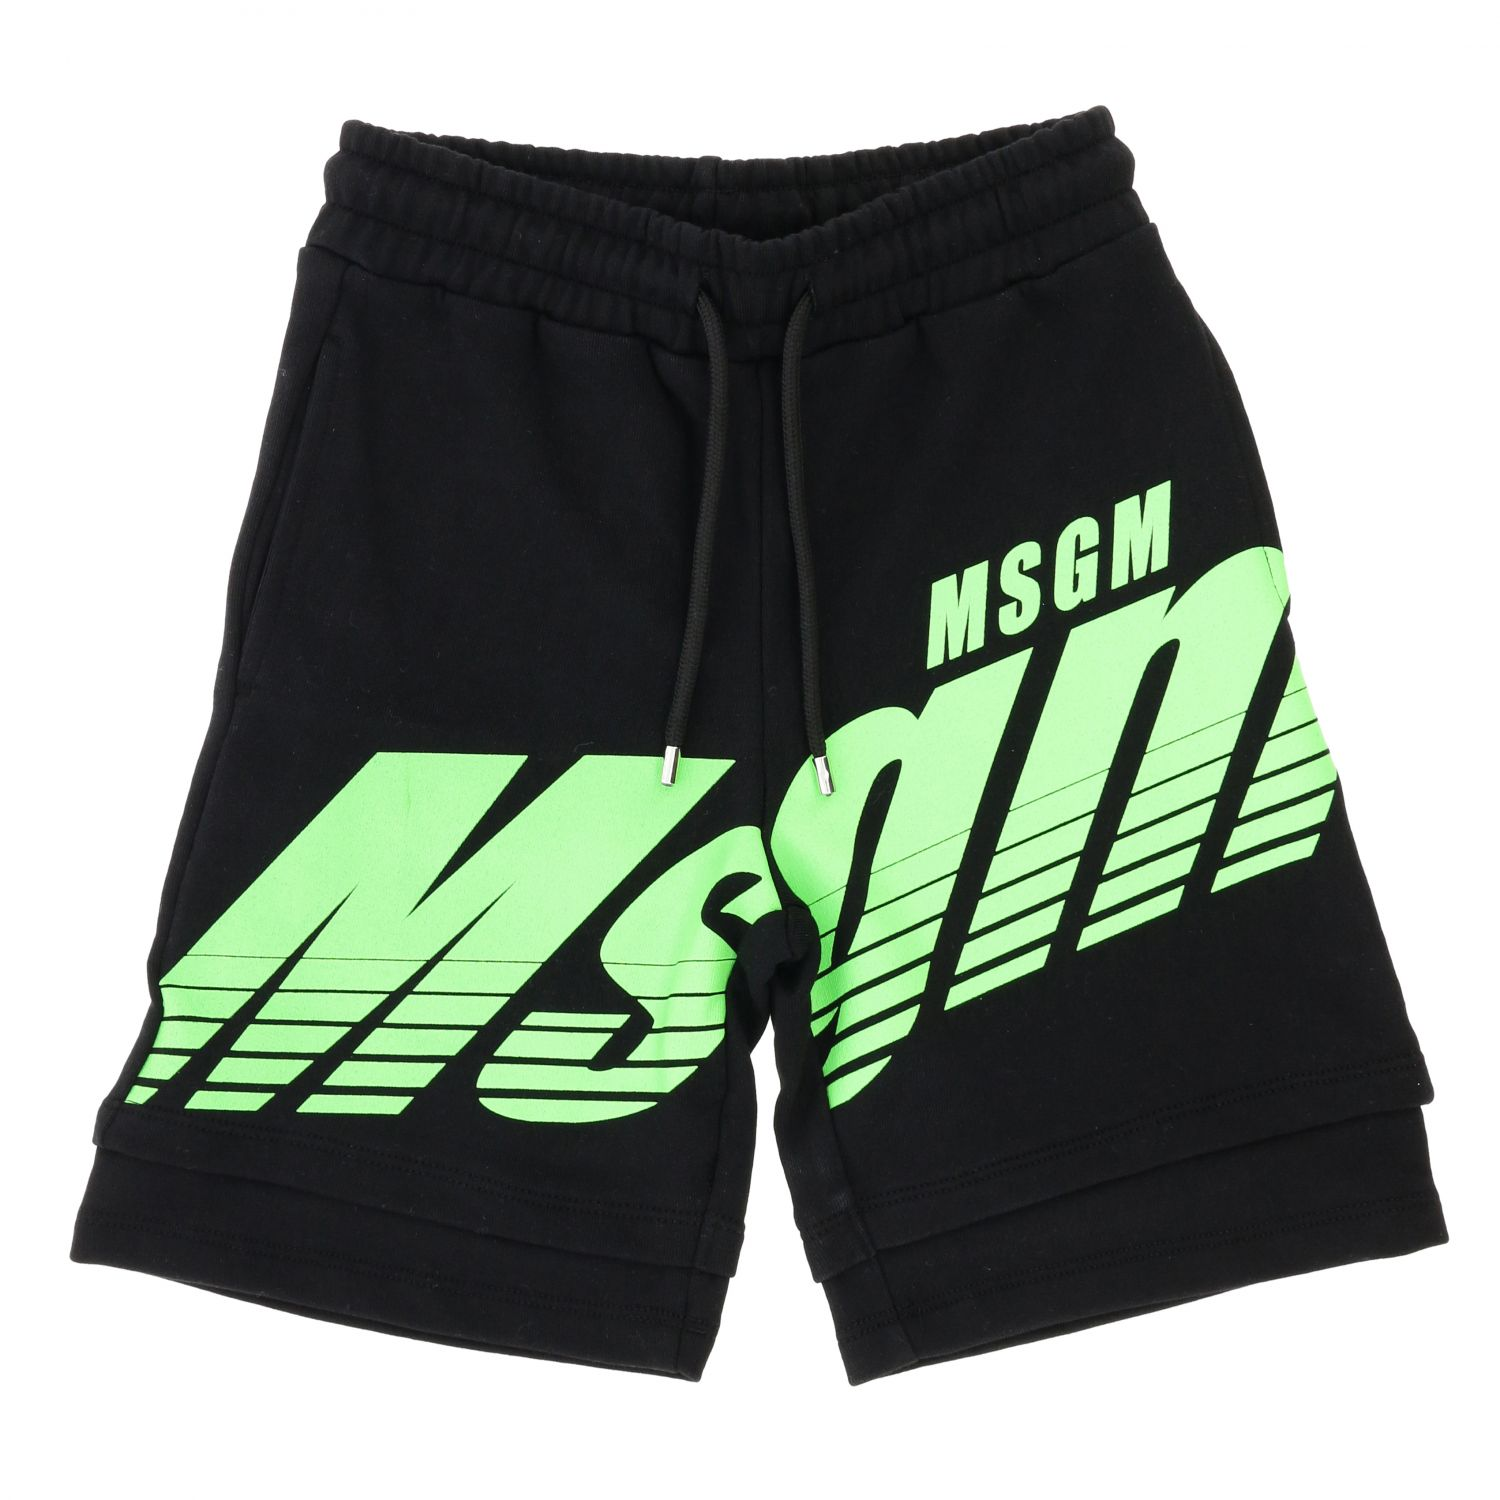 Shorts kids Msgm Kids black 1